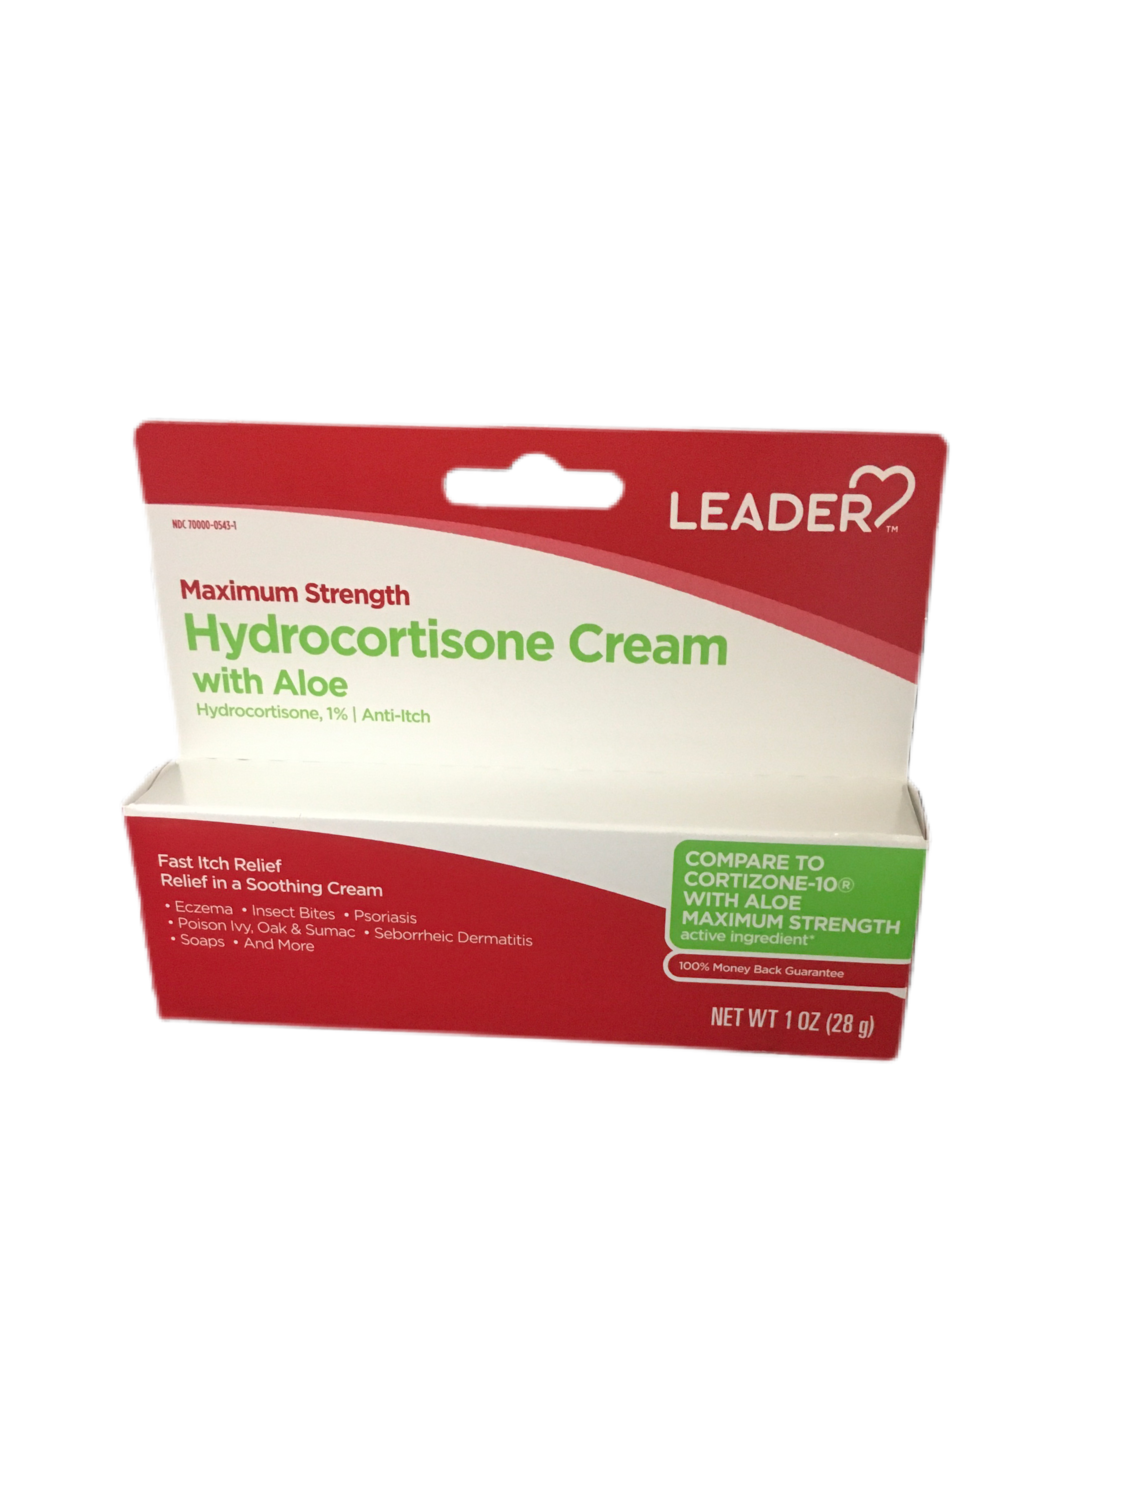 Leader Hydrocortisone Cream with Aloe